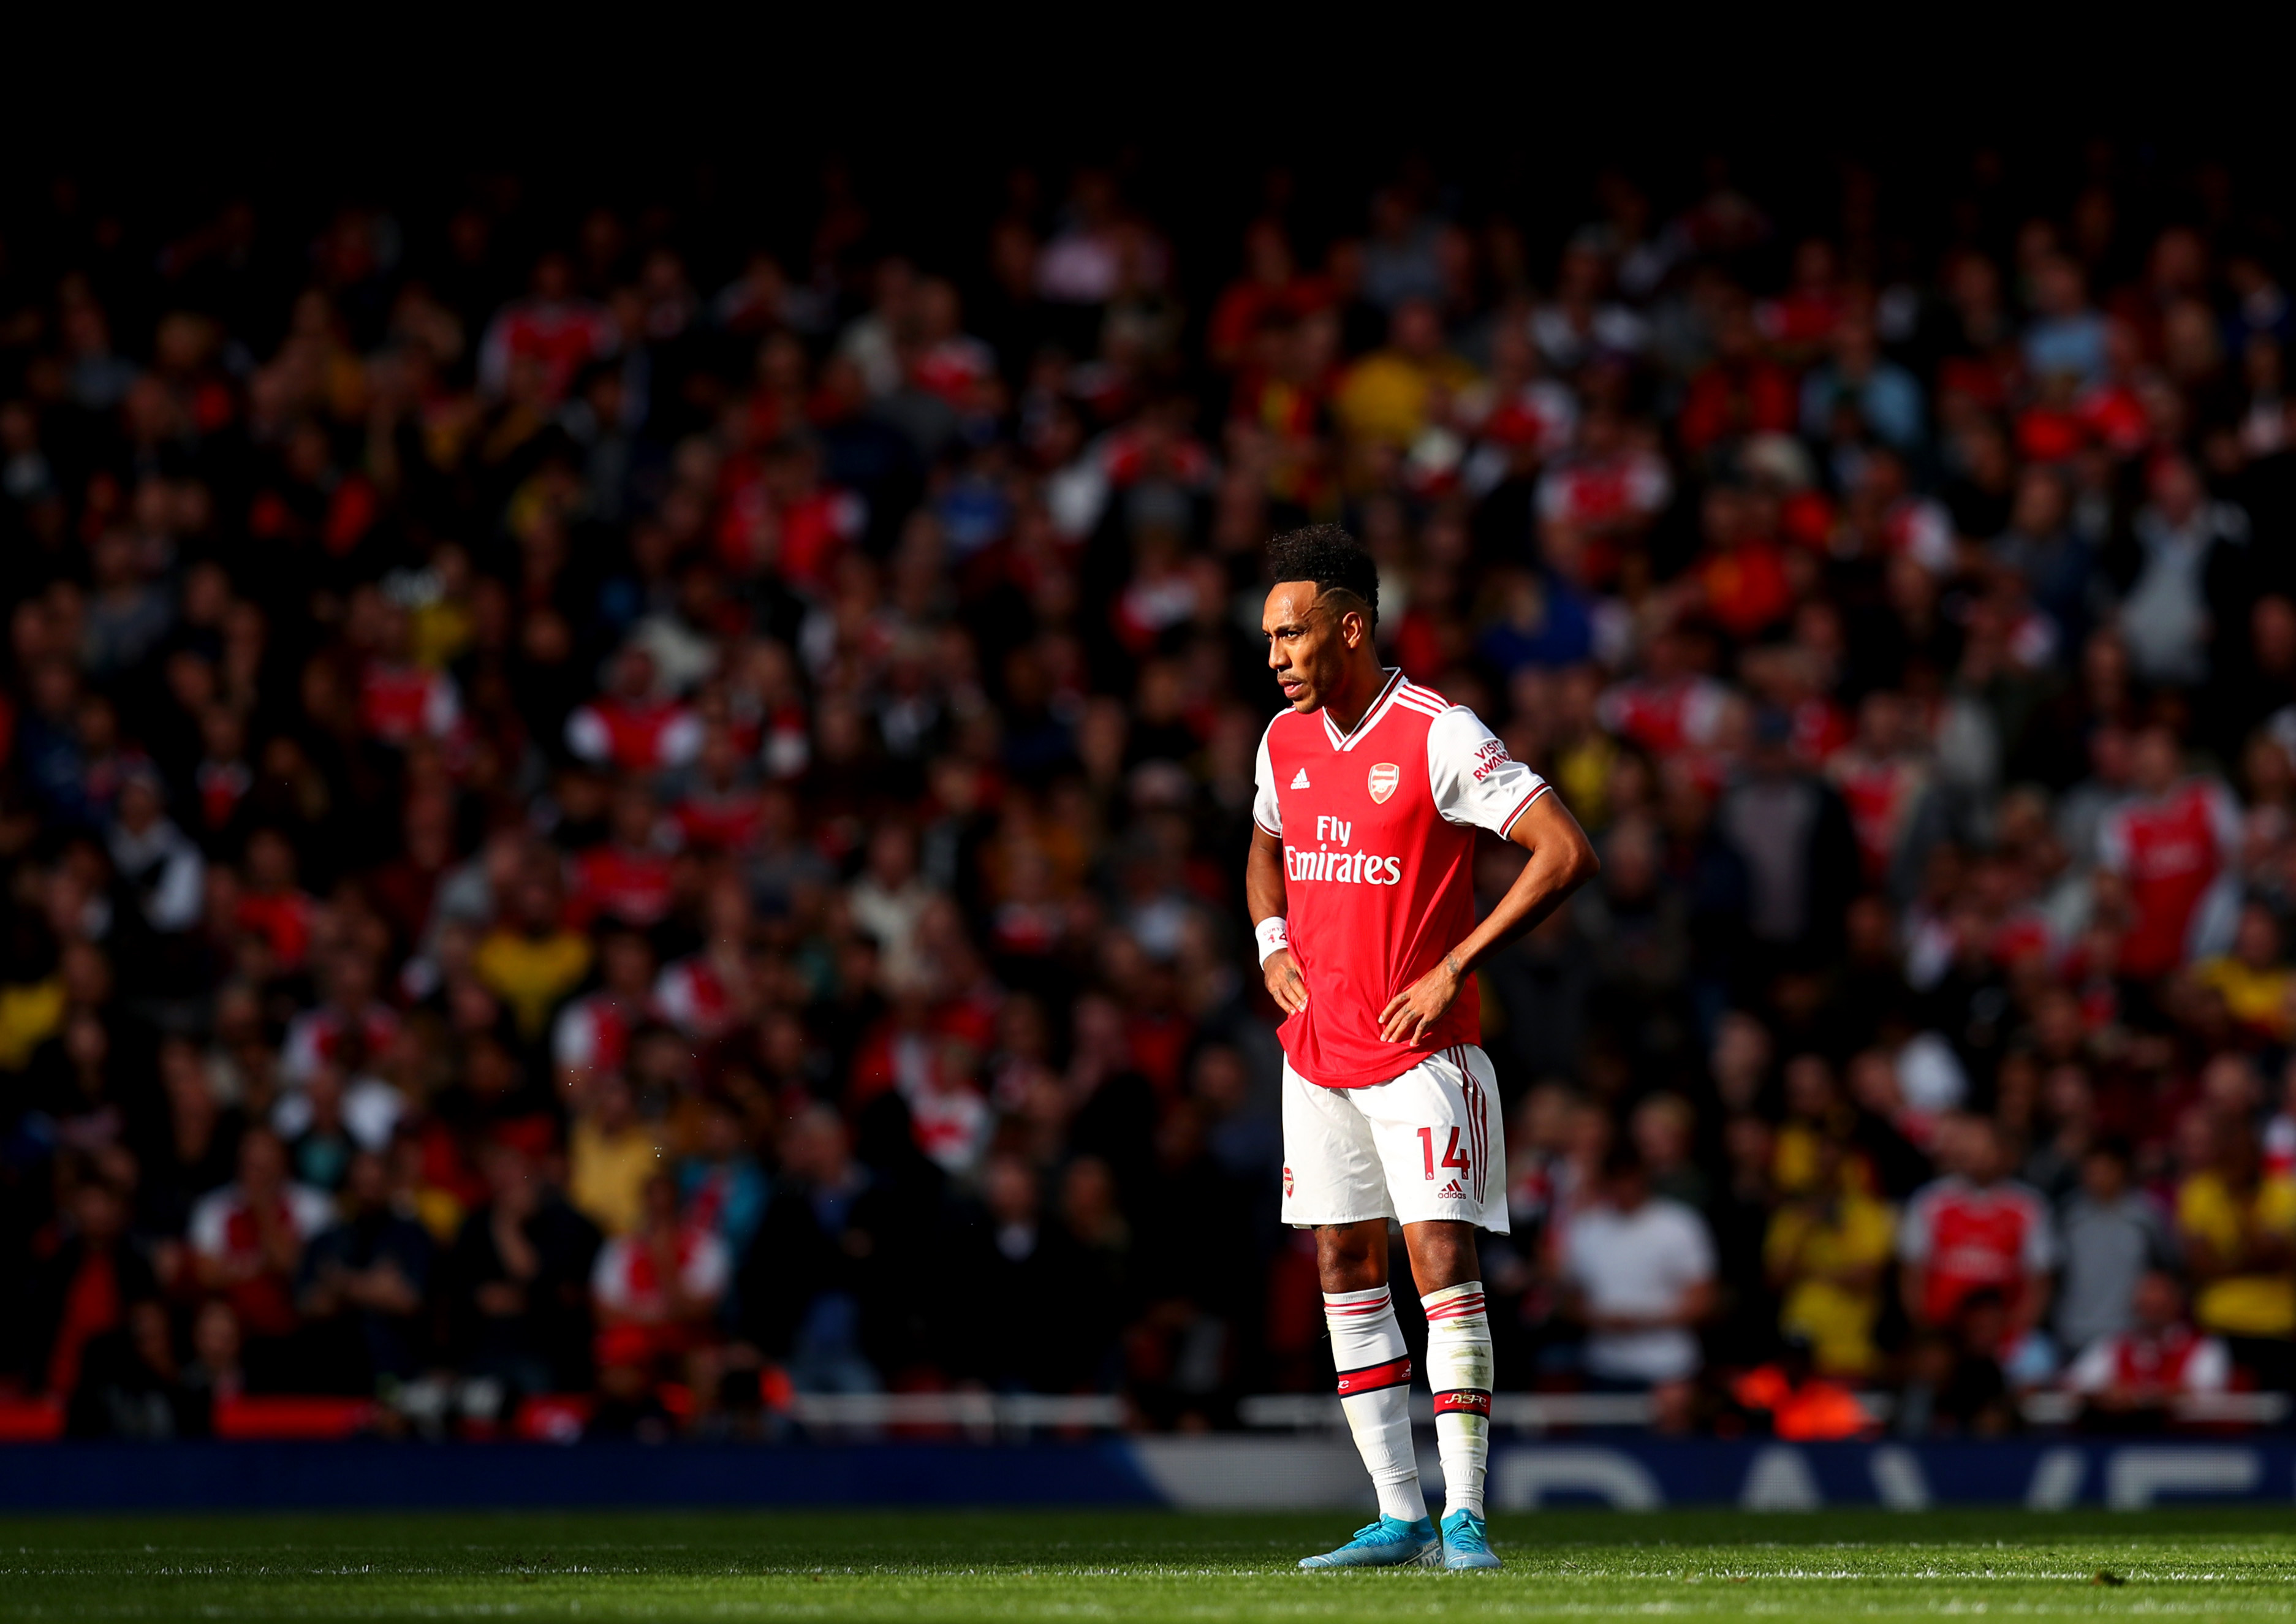 Aubameyang's 2020/21 season was a major letdown. (Picture Courtesy - AFP/Getty Images)